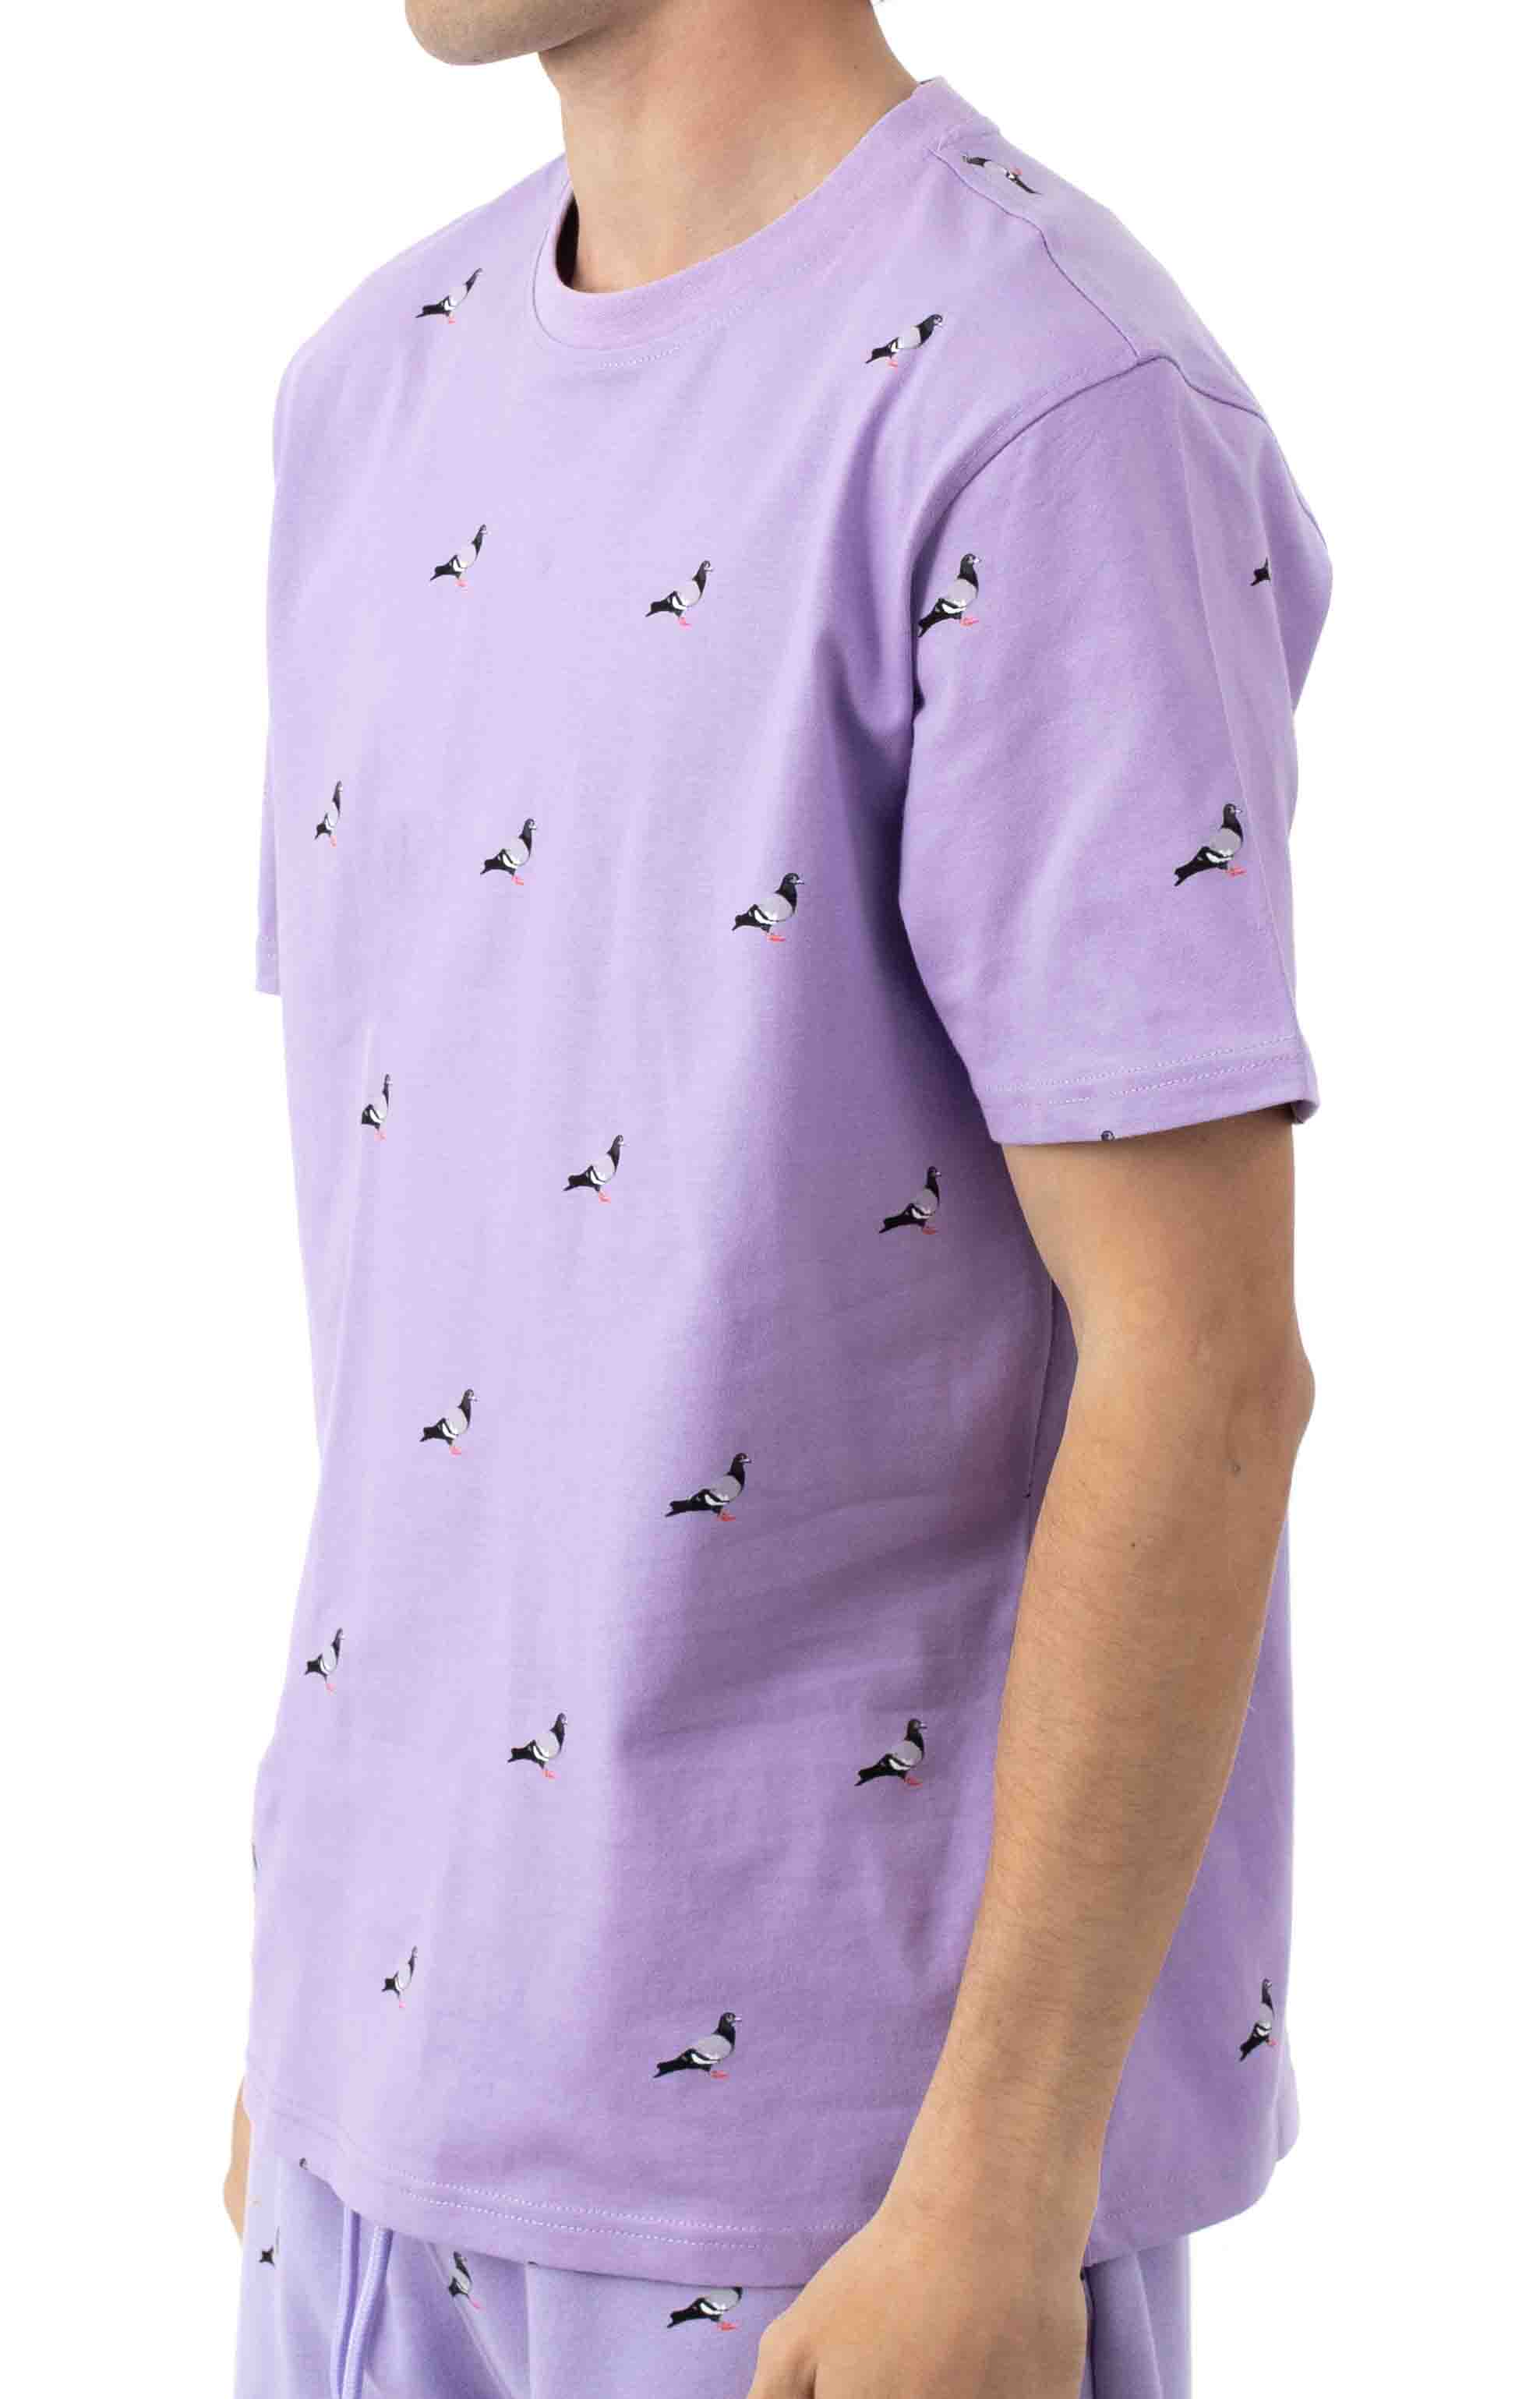 All Over Pigeon T-Shirt - Lilac 2